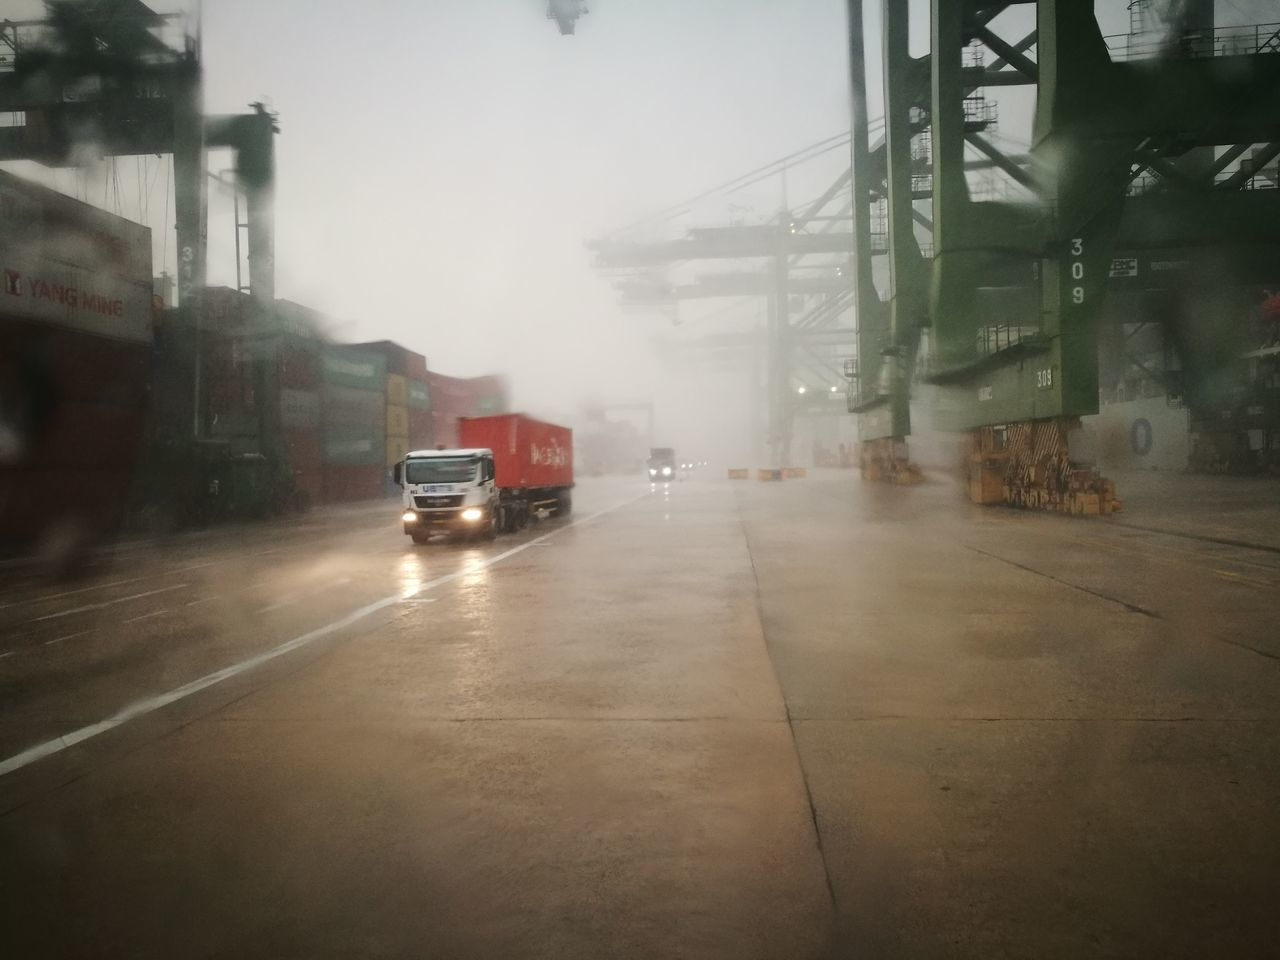 transportation, land vehicle, fog, car, weather, mode of transport, architecture, the way forward, wet, road, built structure, day, outdoors, no people, building exterior, city, sky